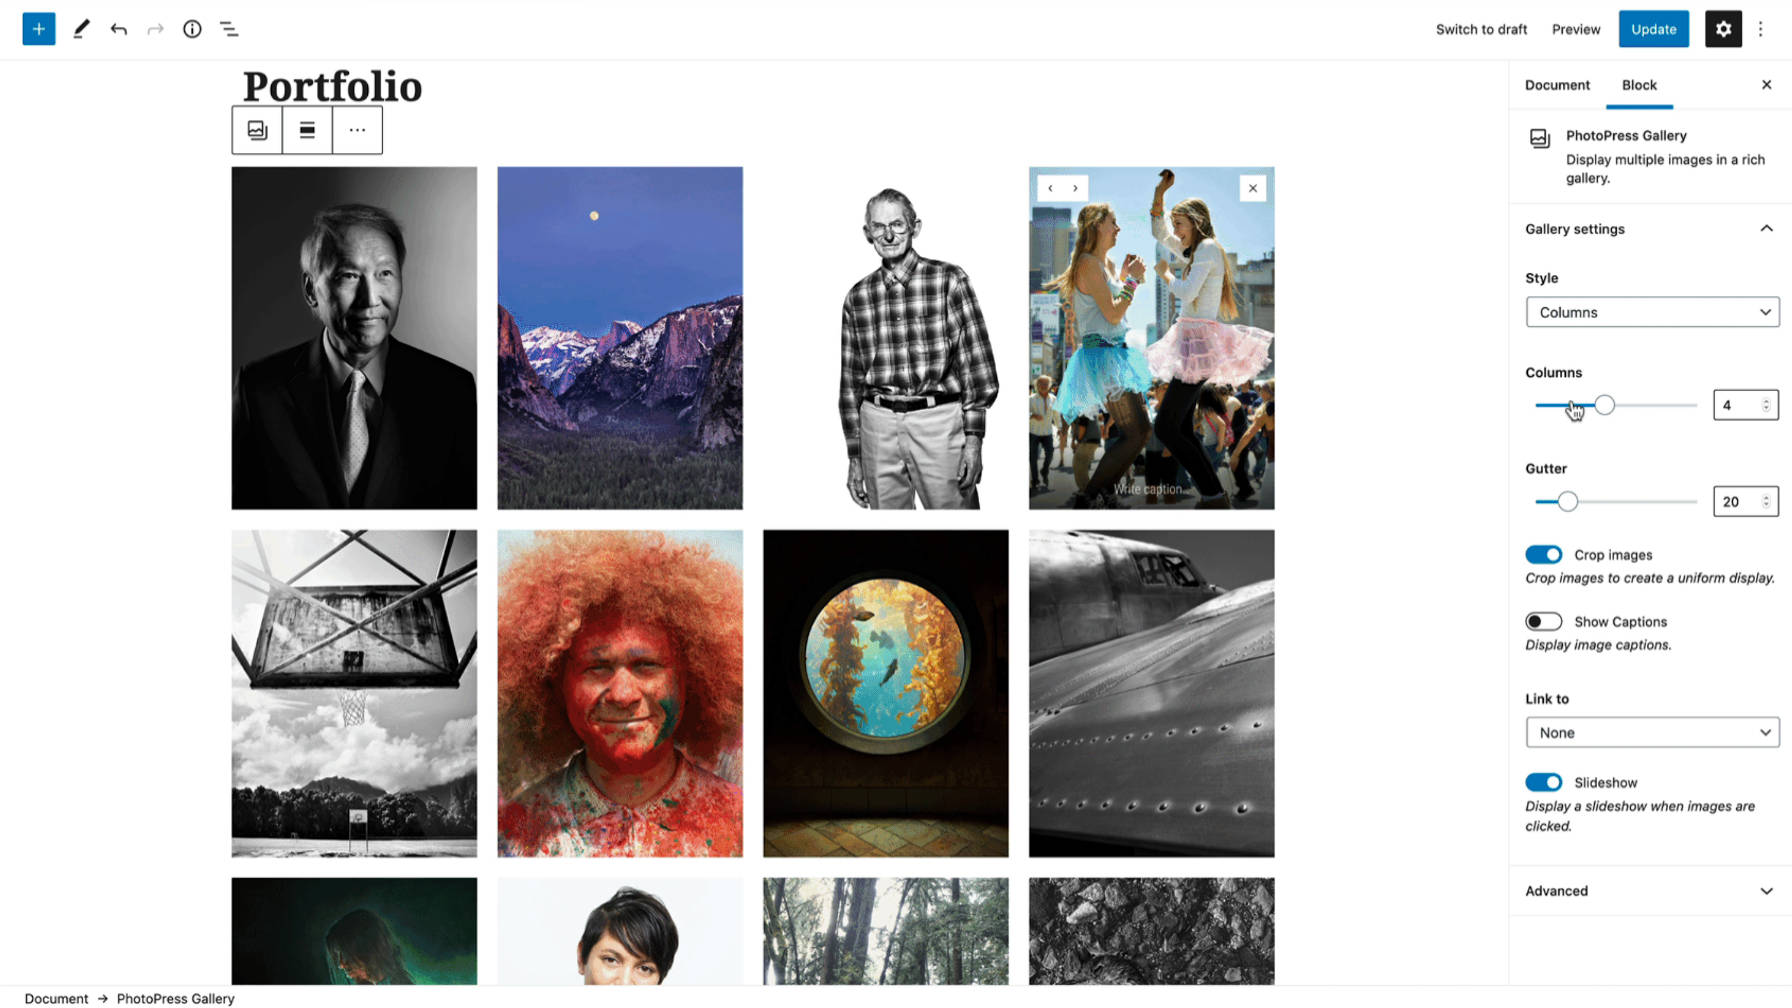 Bloc PhotoPress Gallery dans l'éditeur WordPress.